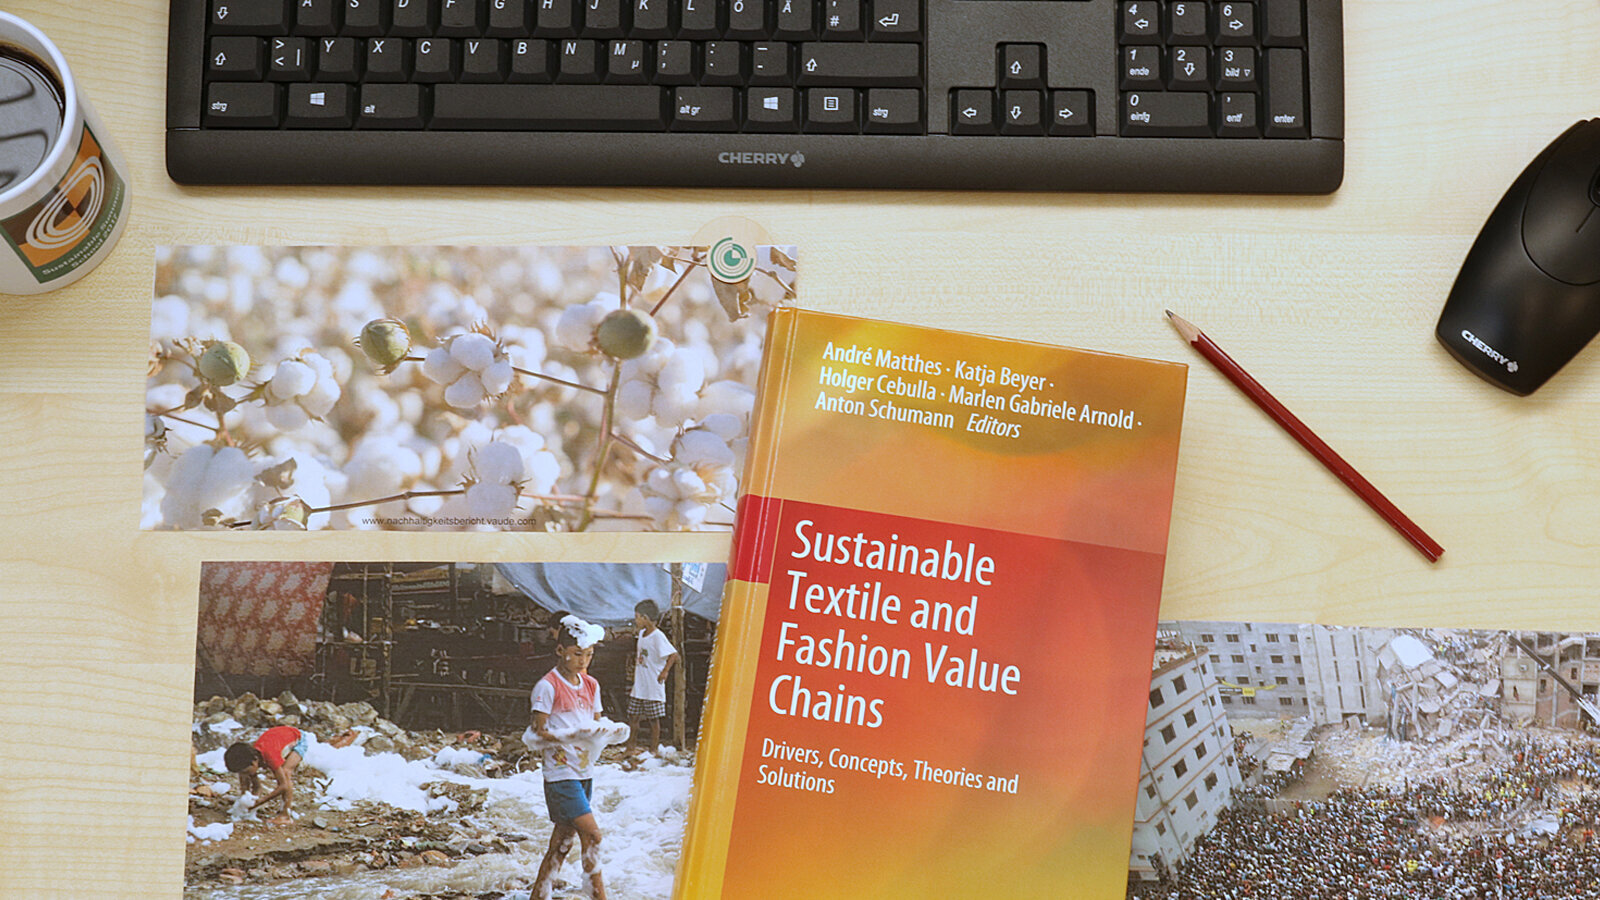 Photo of a desk with the book Sustainable Textile and Fashion Value Chains on it.